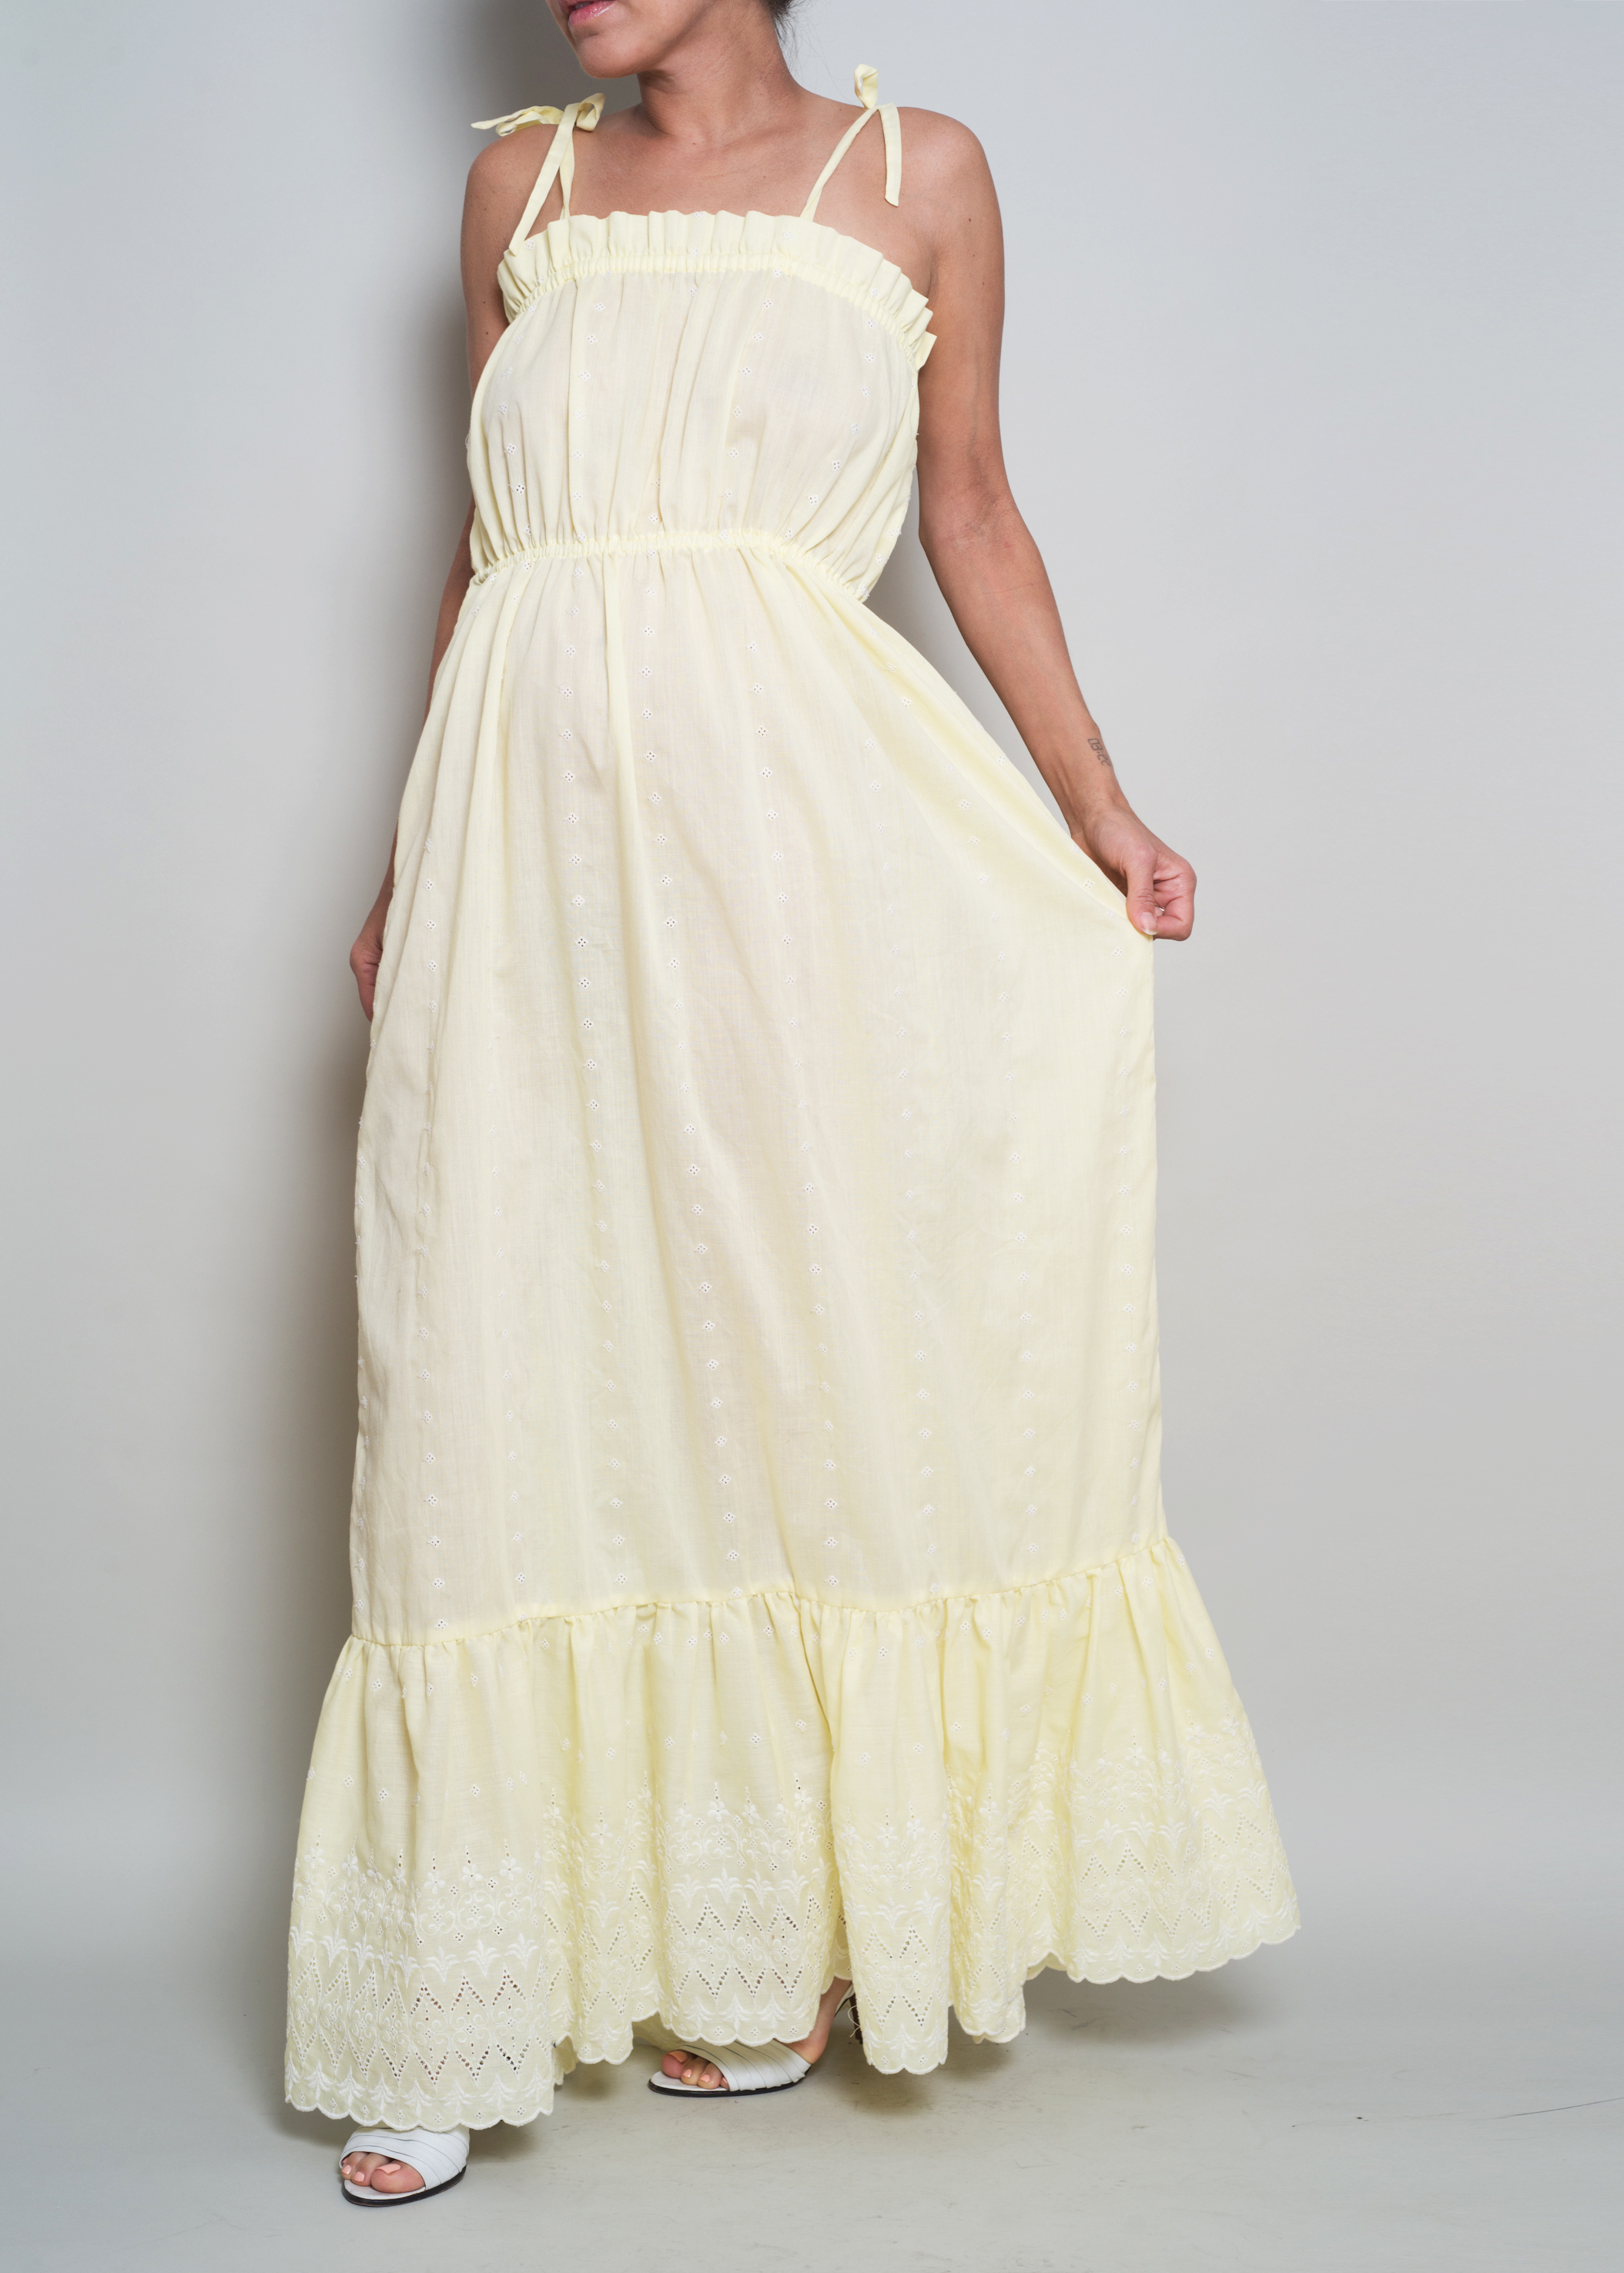 1970s Yellow Cotton Eyelet Detail Summer Maxi Dress from A PART OF THE REST